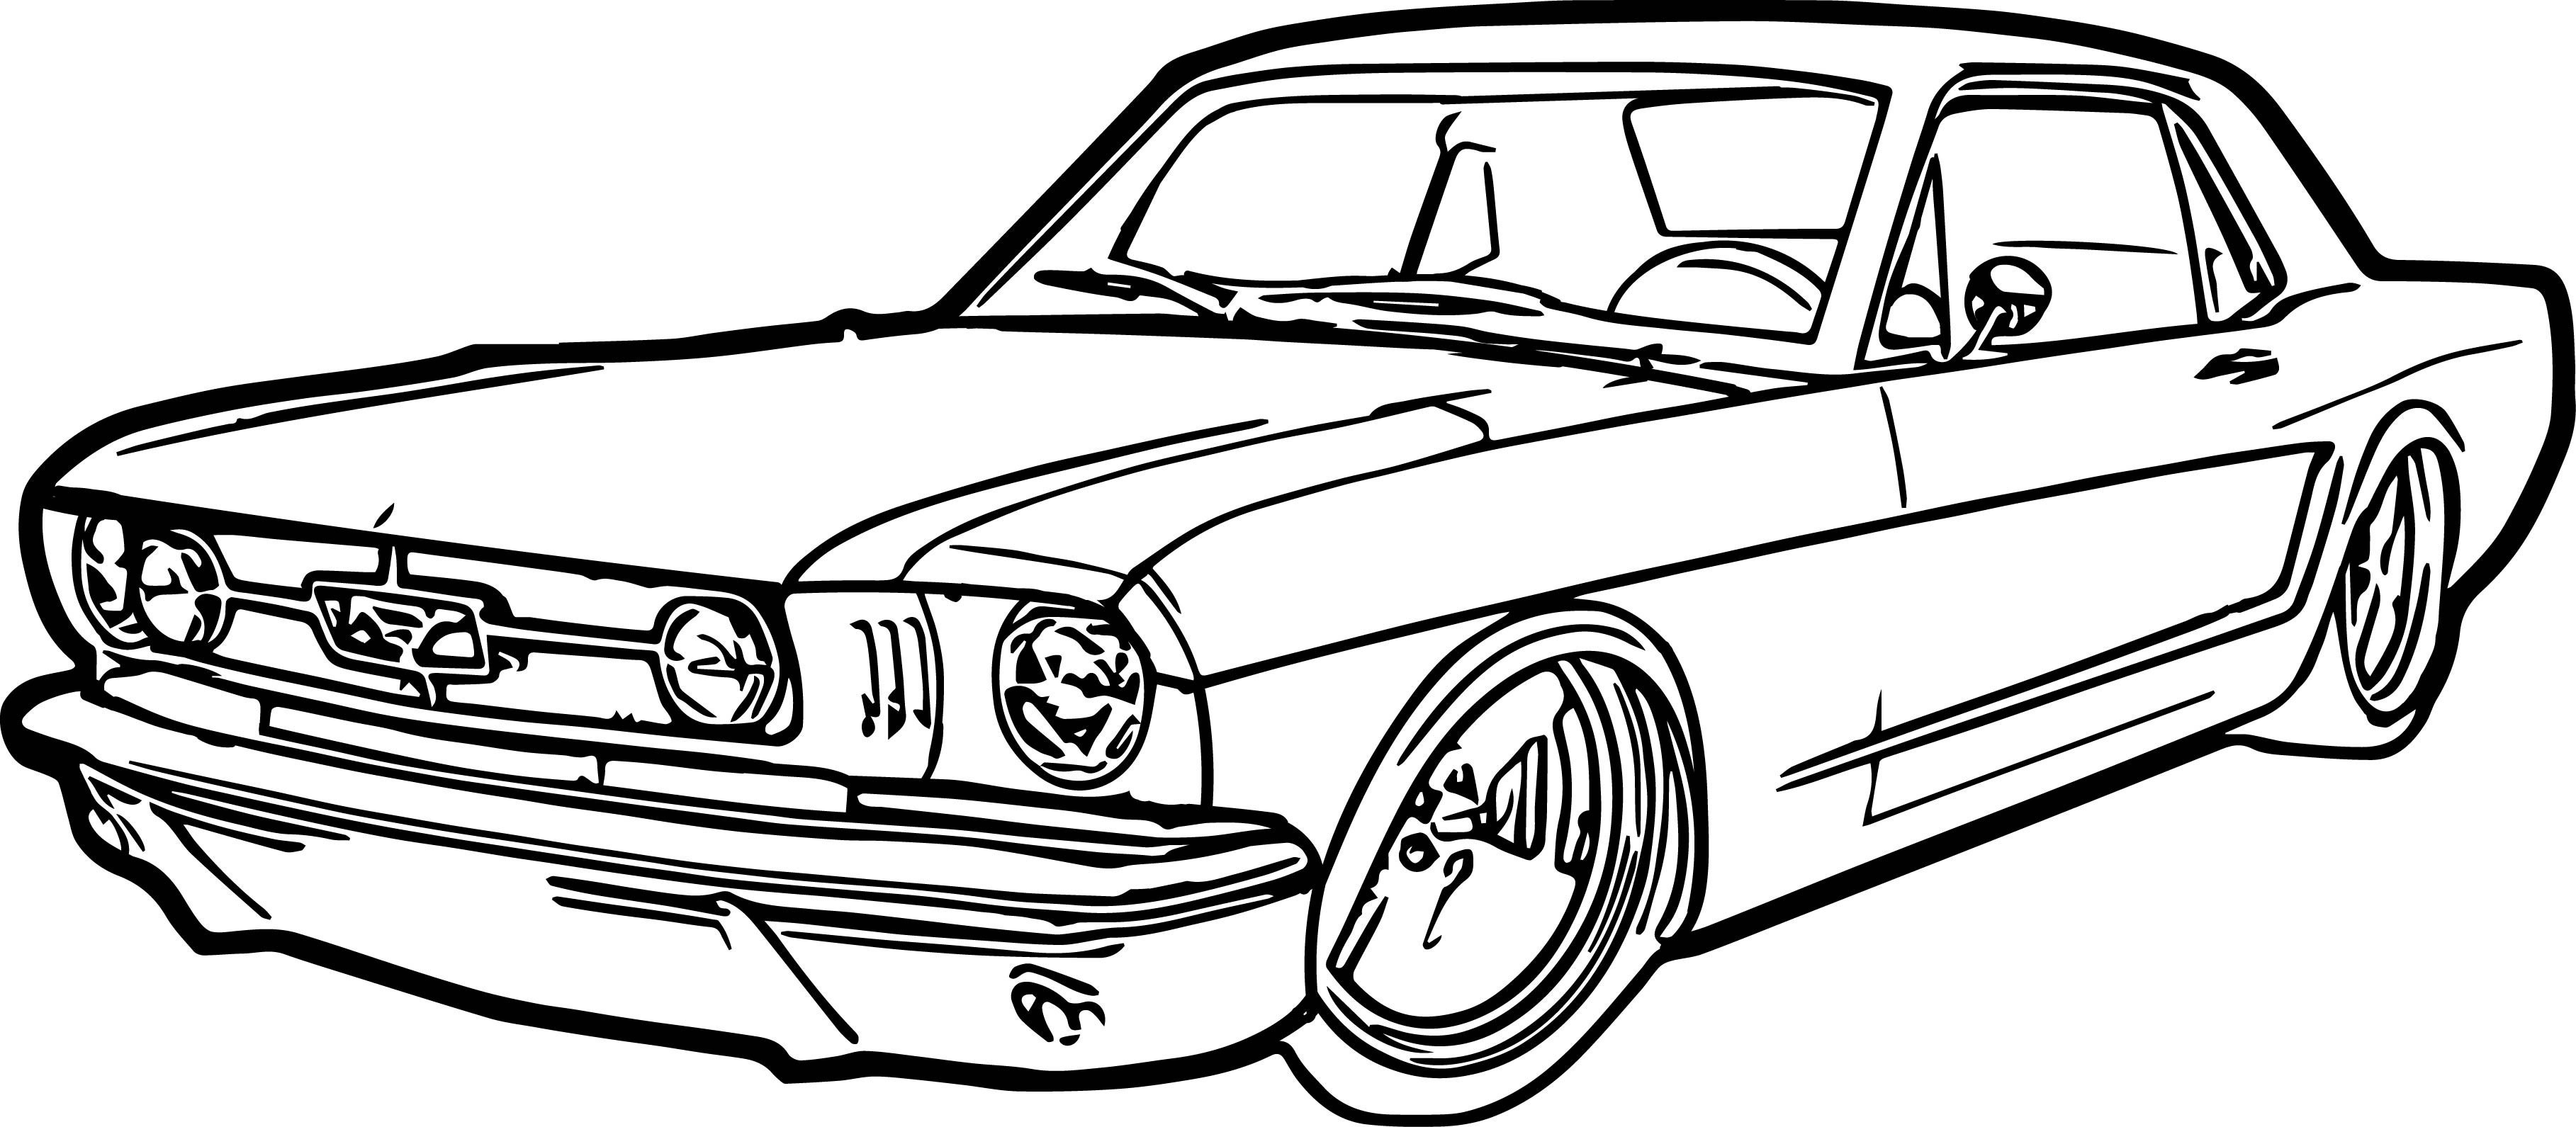 3635x1591 Racing Car Colouring Pages Collection Of Race Coloring Easy